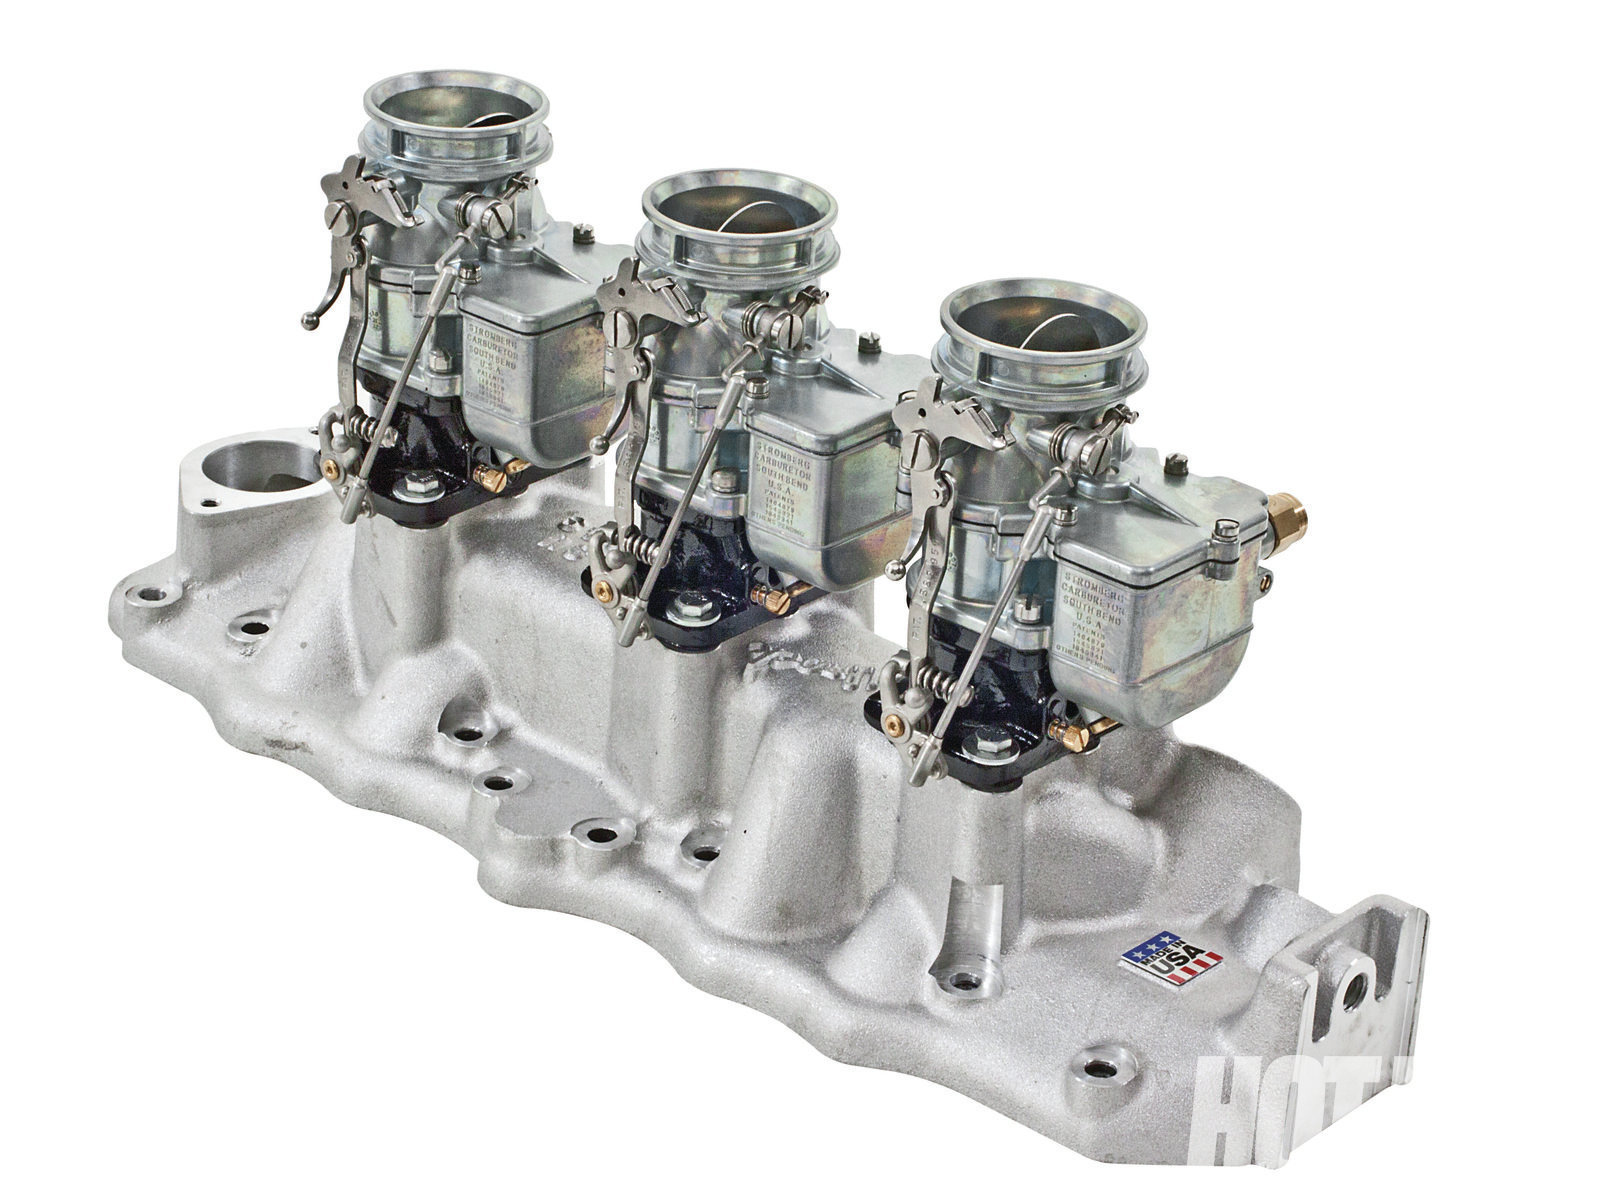 Edelbrock offers two different versions of this intake for early and late Flatheads. We tested the '49–'53 version that features front road-draft tube provisions, 13⁄8-inch-od oil fill bosses, and a raised fuel-pump boss.